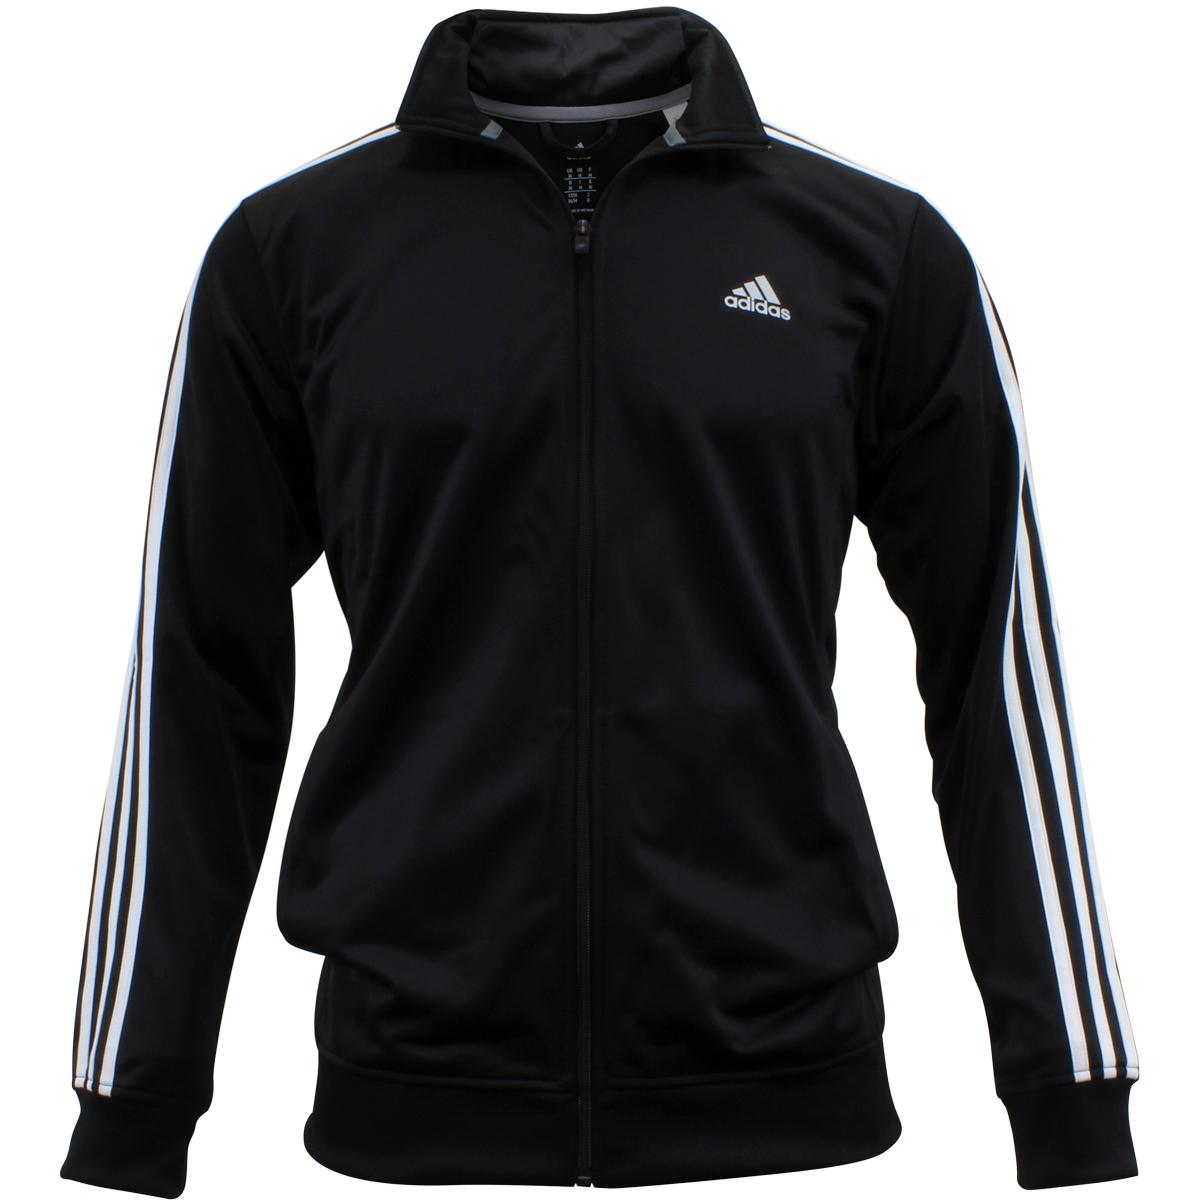 a18e73cfc Adidas Men's Essentials Black/White Tricot Long Sleeve Track Jacket by  Adidas